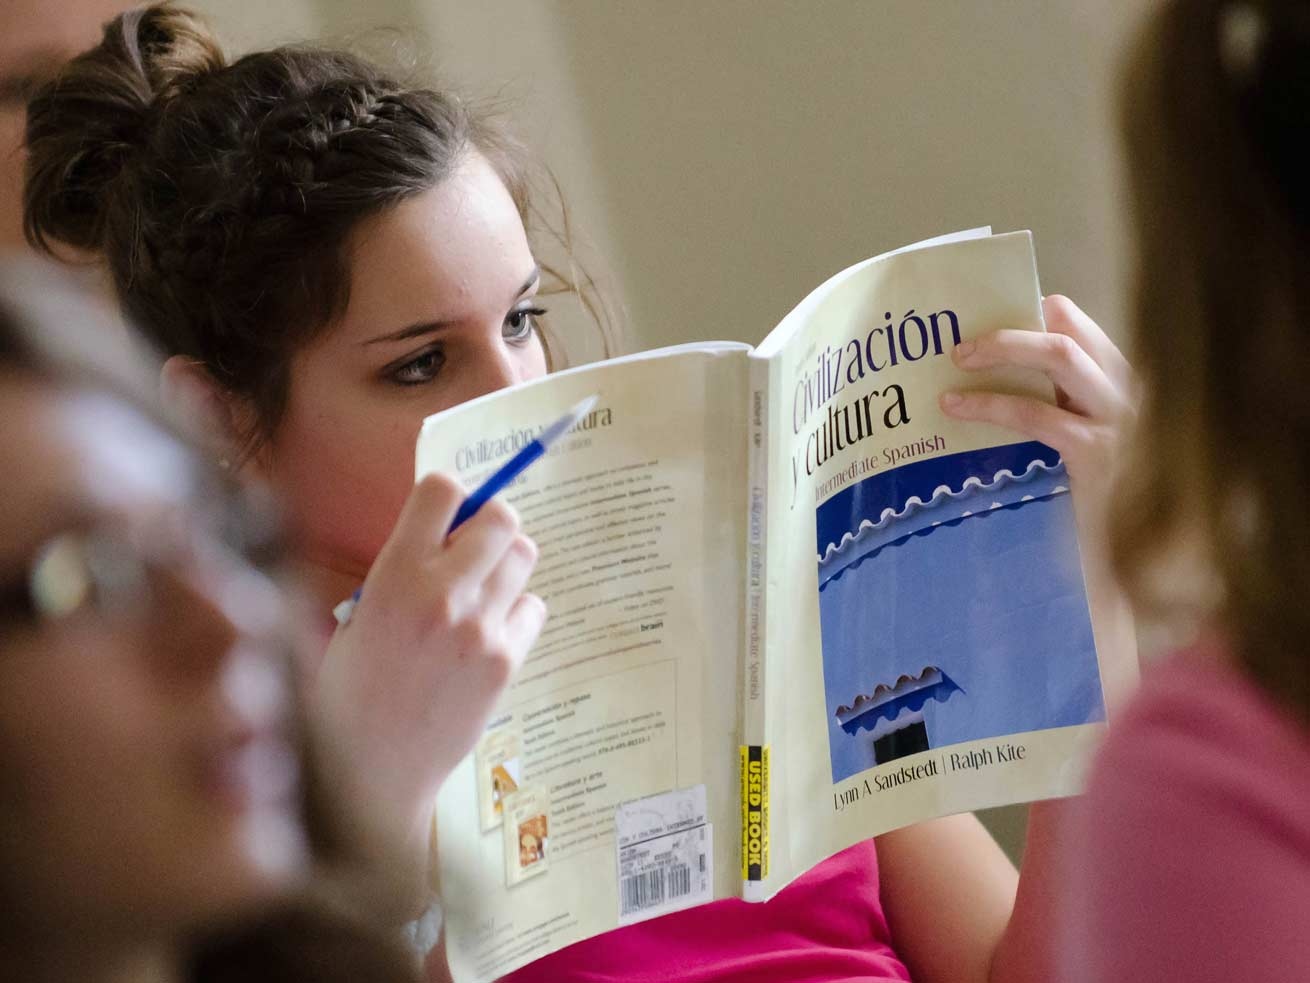 Study Different Areas of Interest